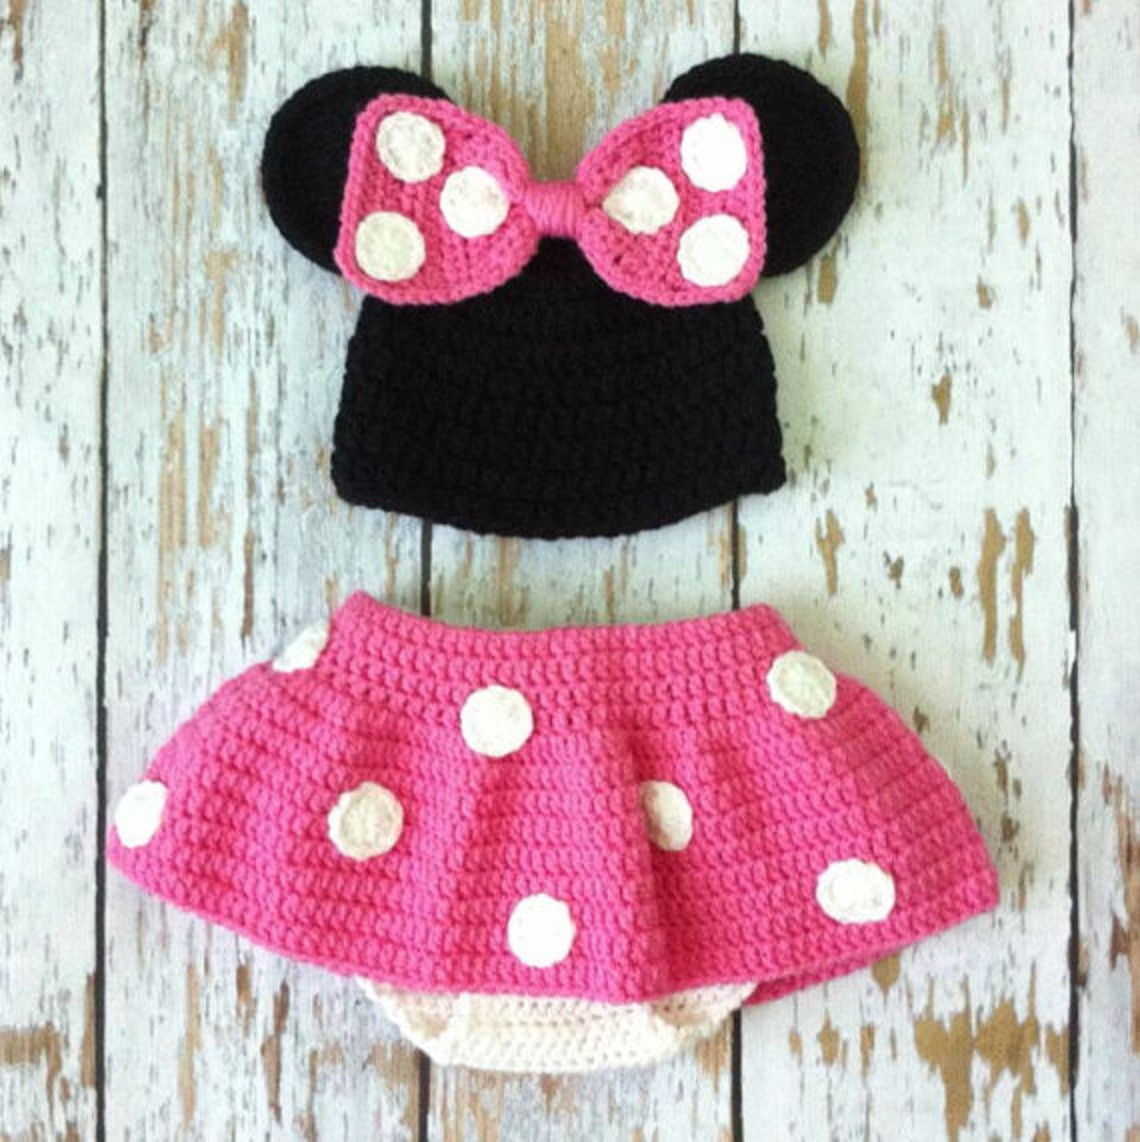 Free Crochet Pattern For Baby Minnie Mouse Outfit : Conjunto da Minie Croch? Divertido by Sandra Campos Elo7